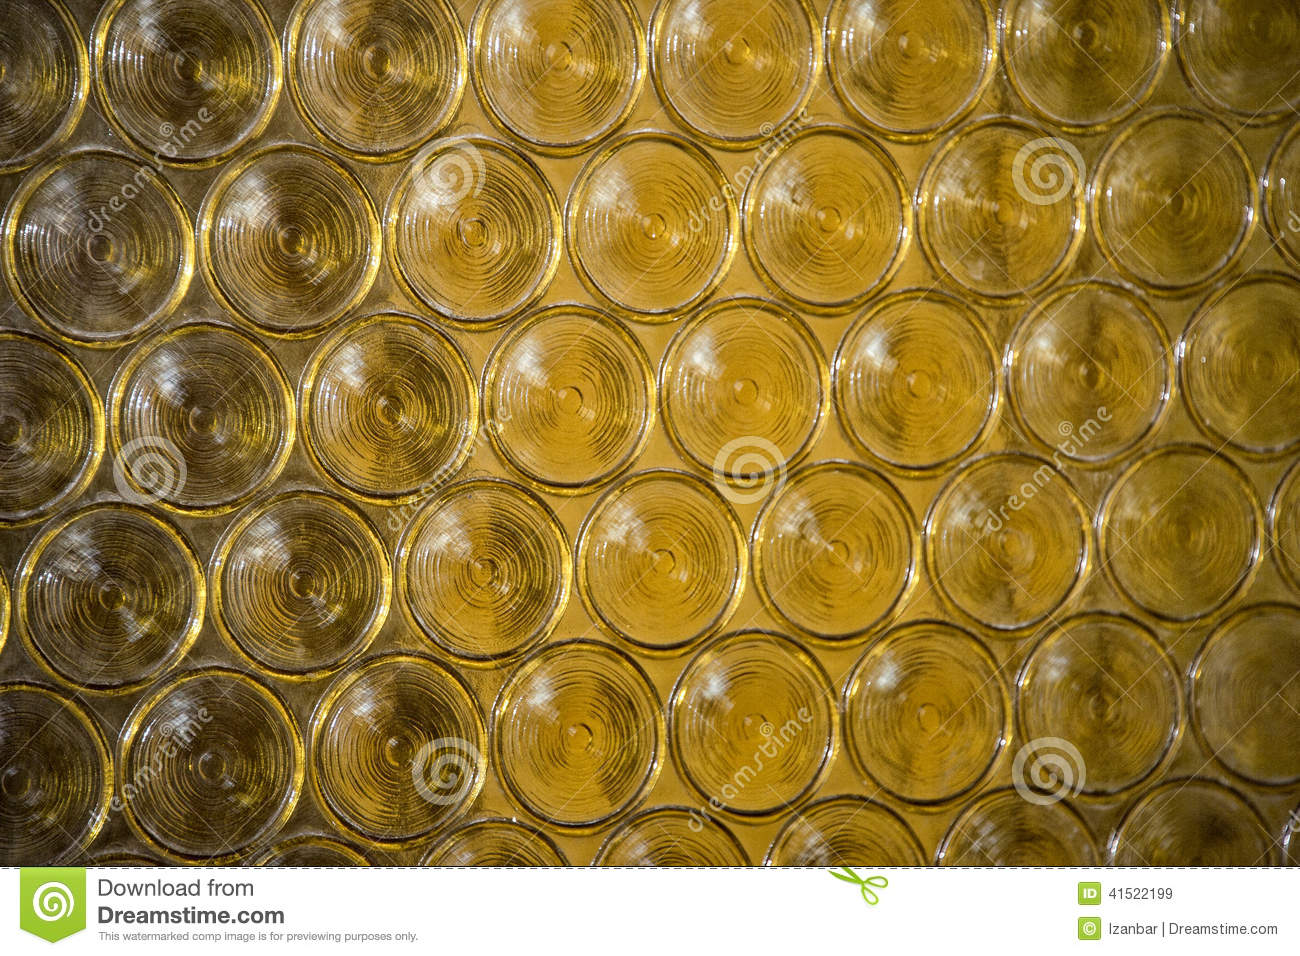 medieval castle yellow glass door detail stock photo - image: 41522199